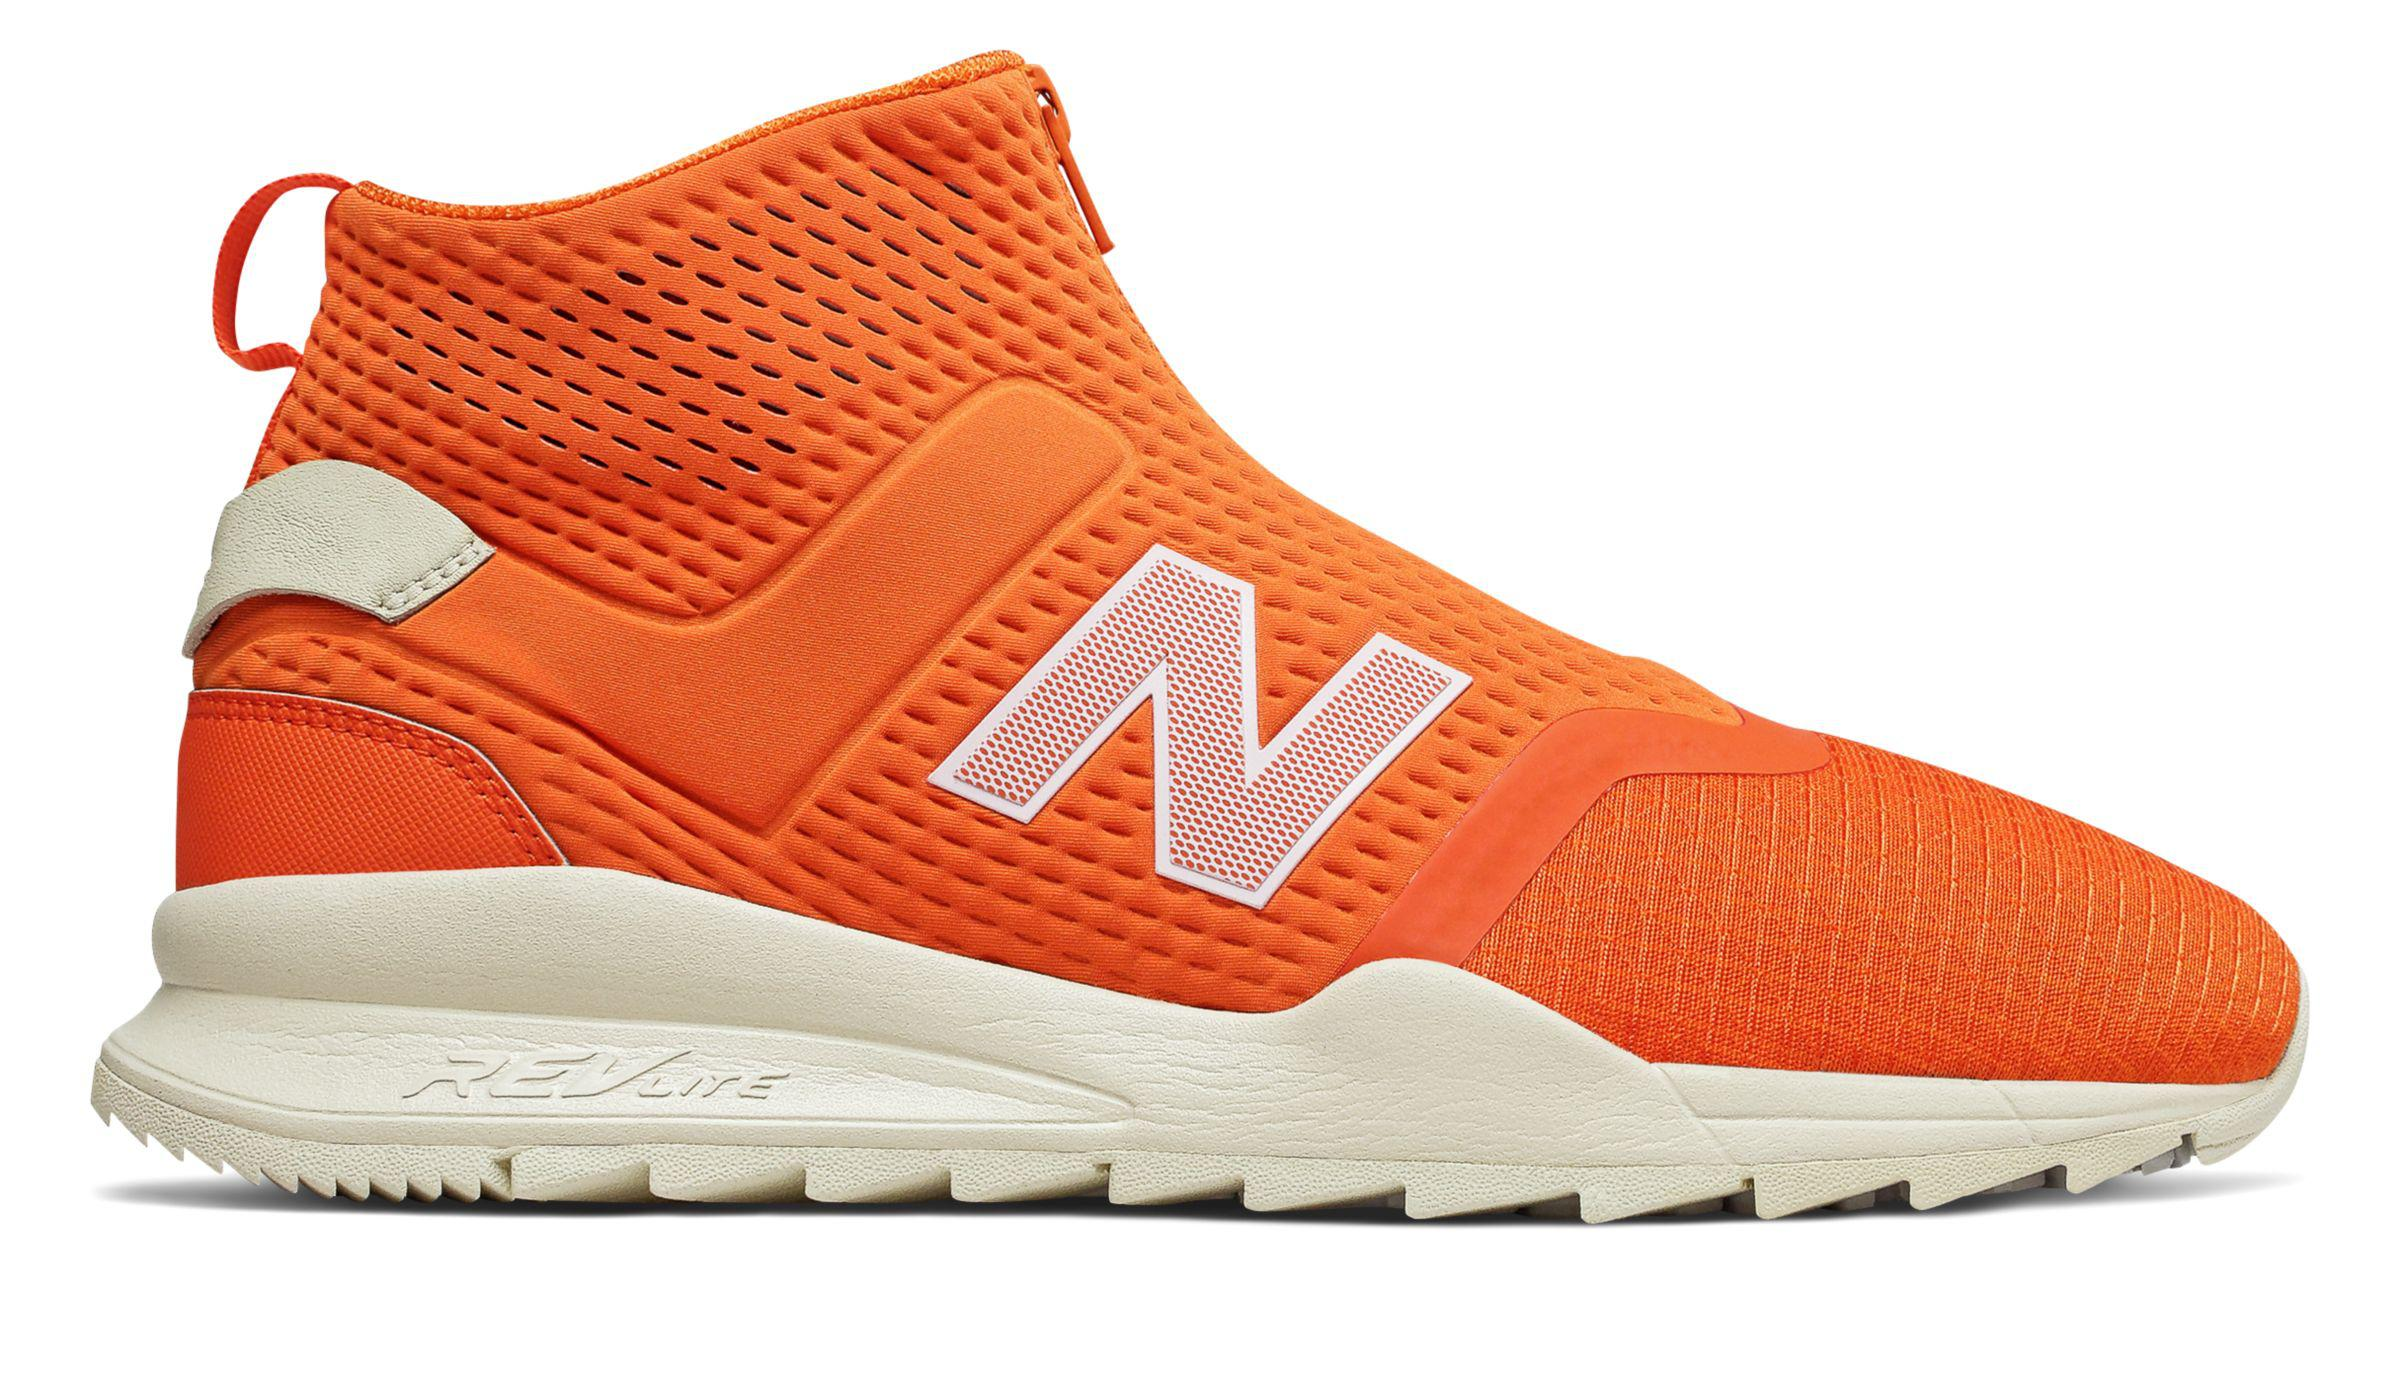 New Balance 247 Mid Shoes